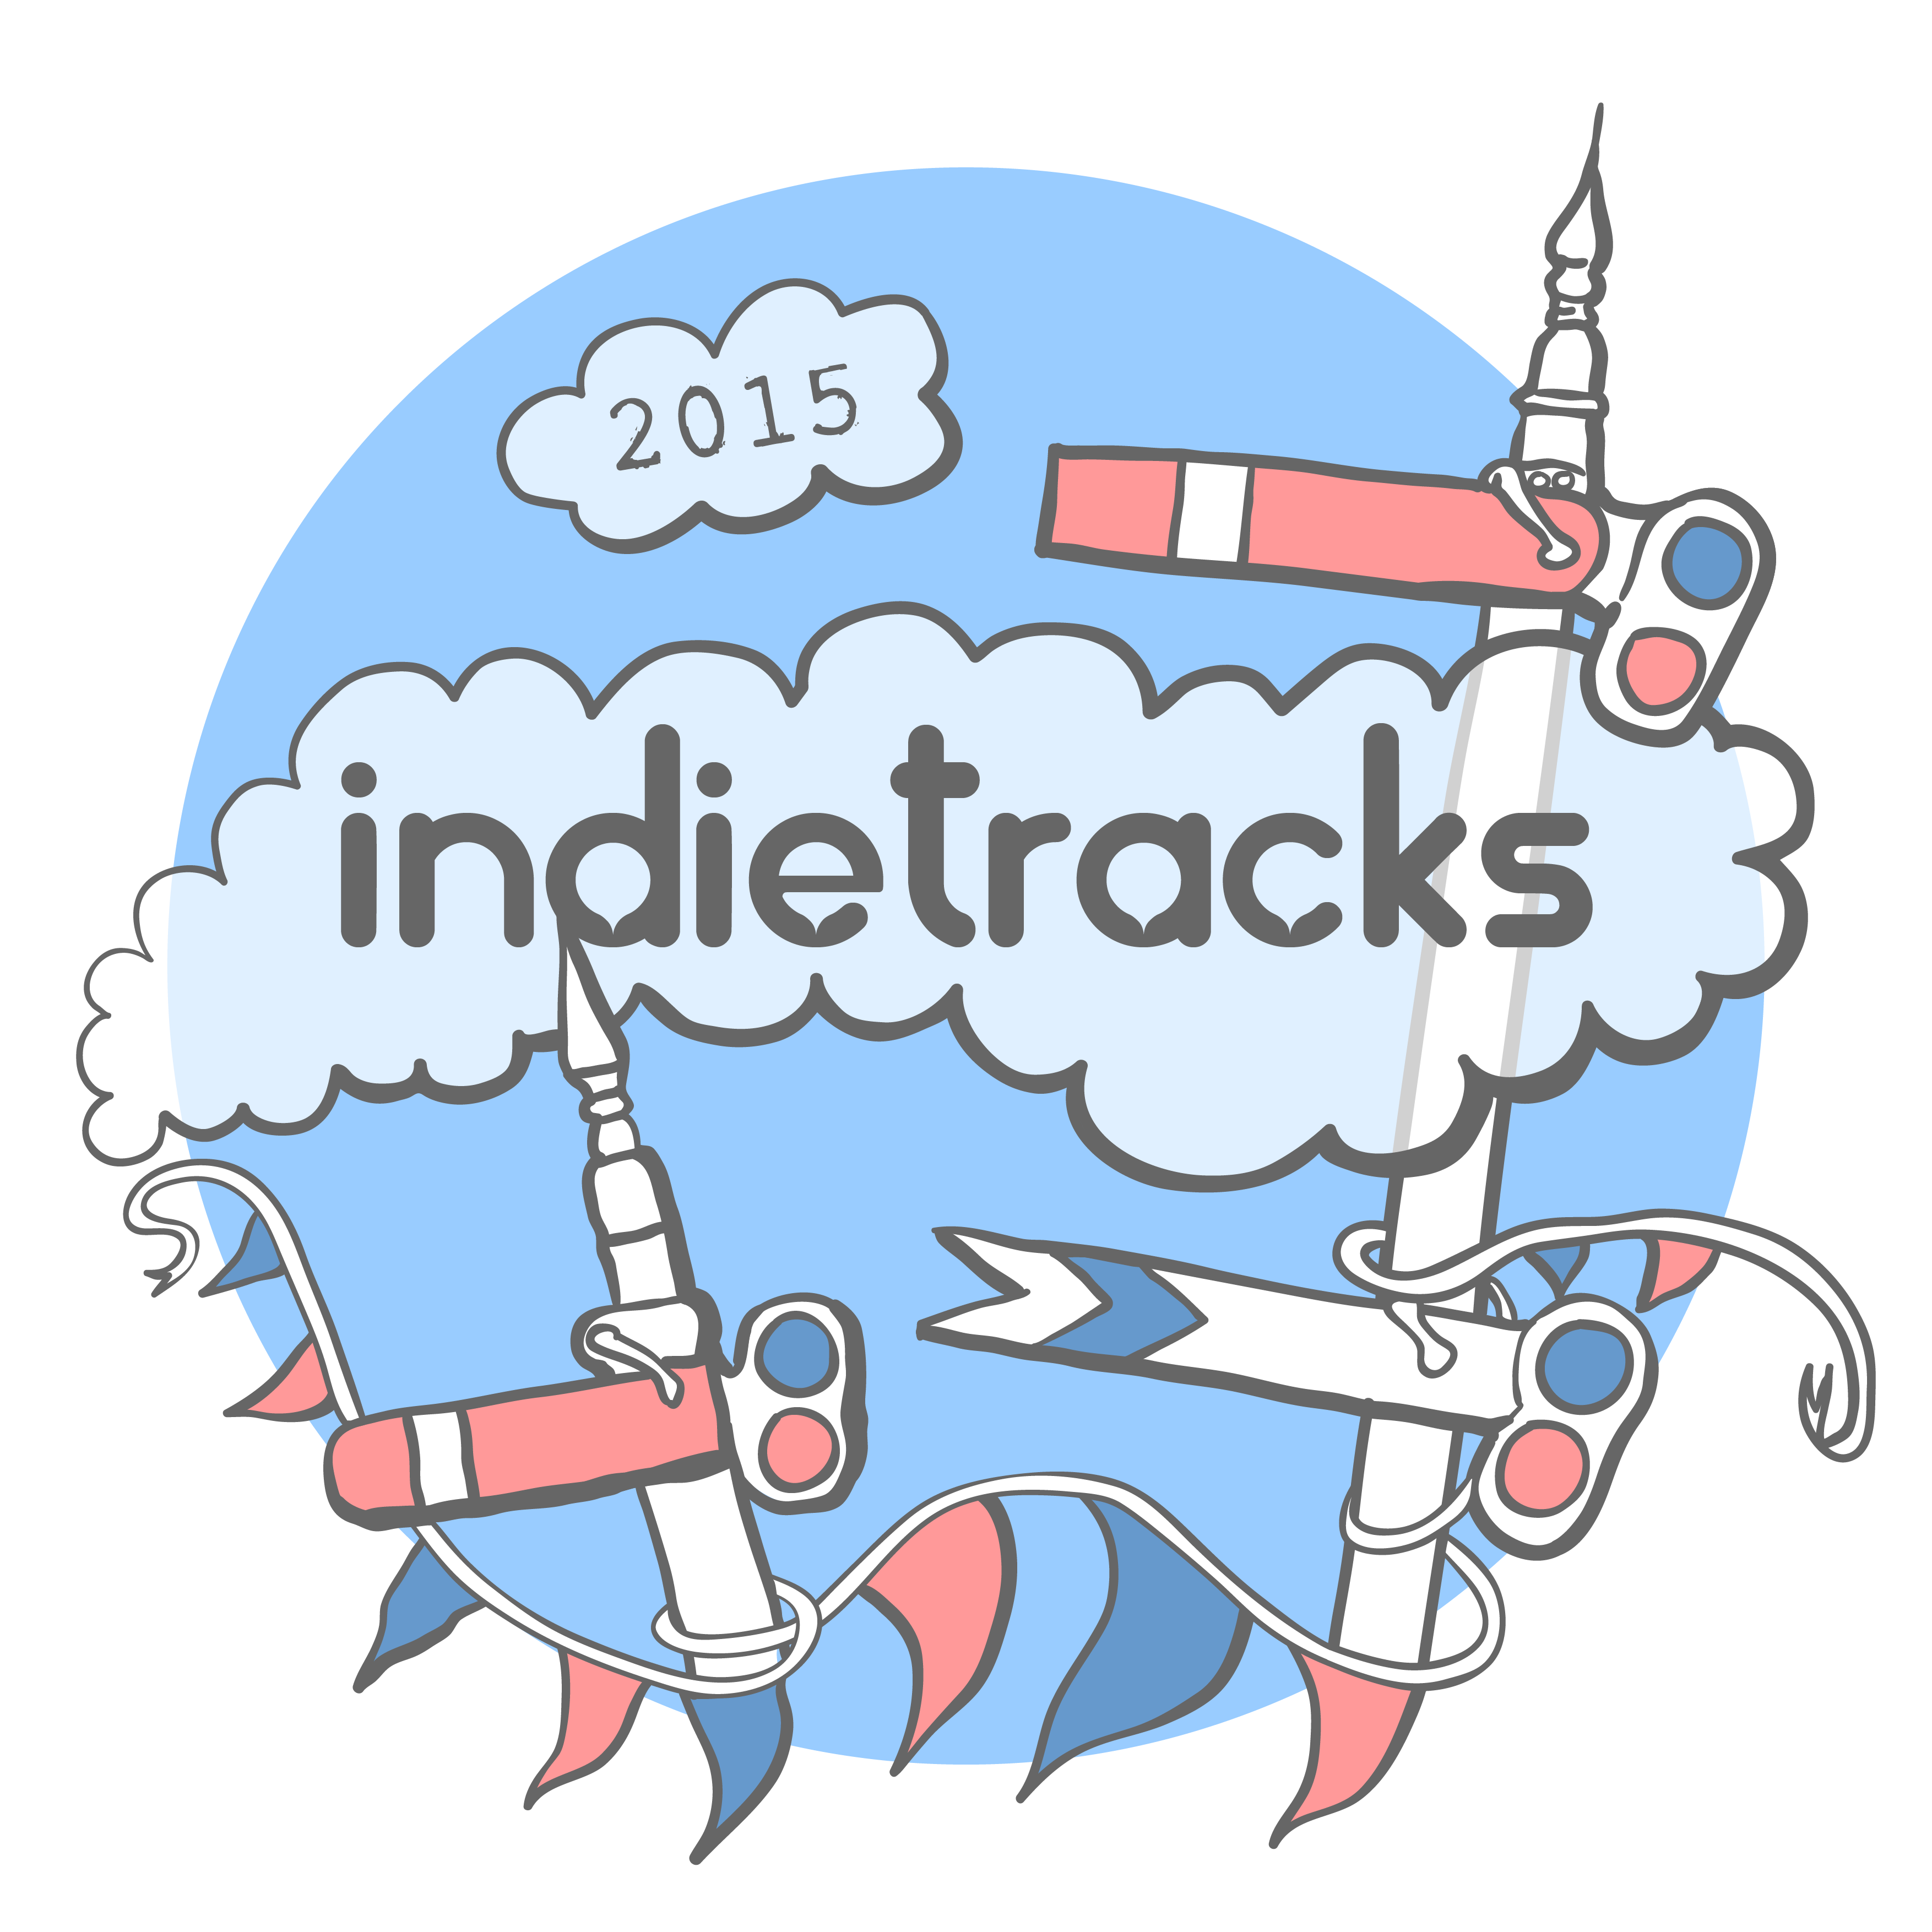 Indietracks 2015 logo